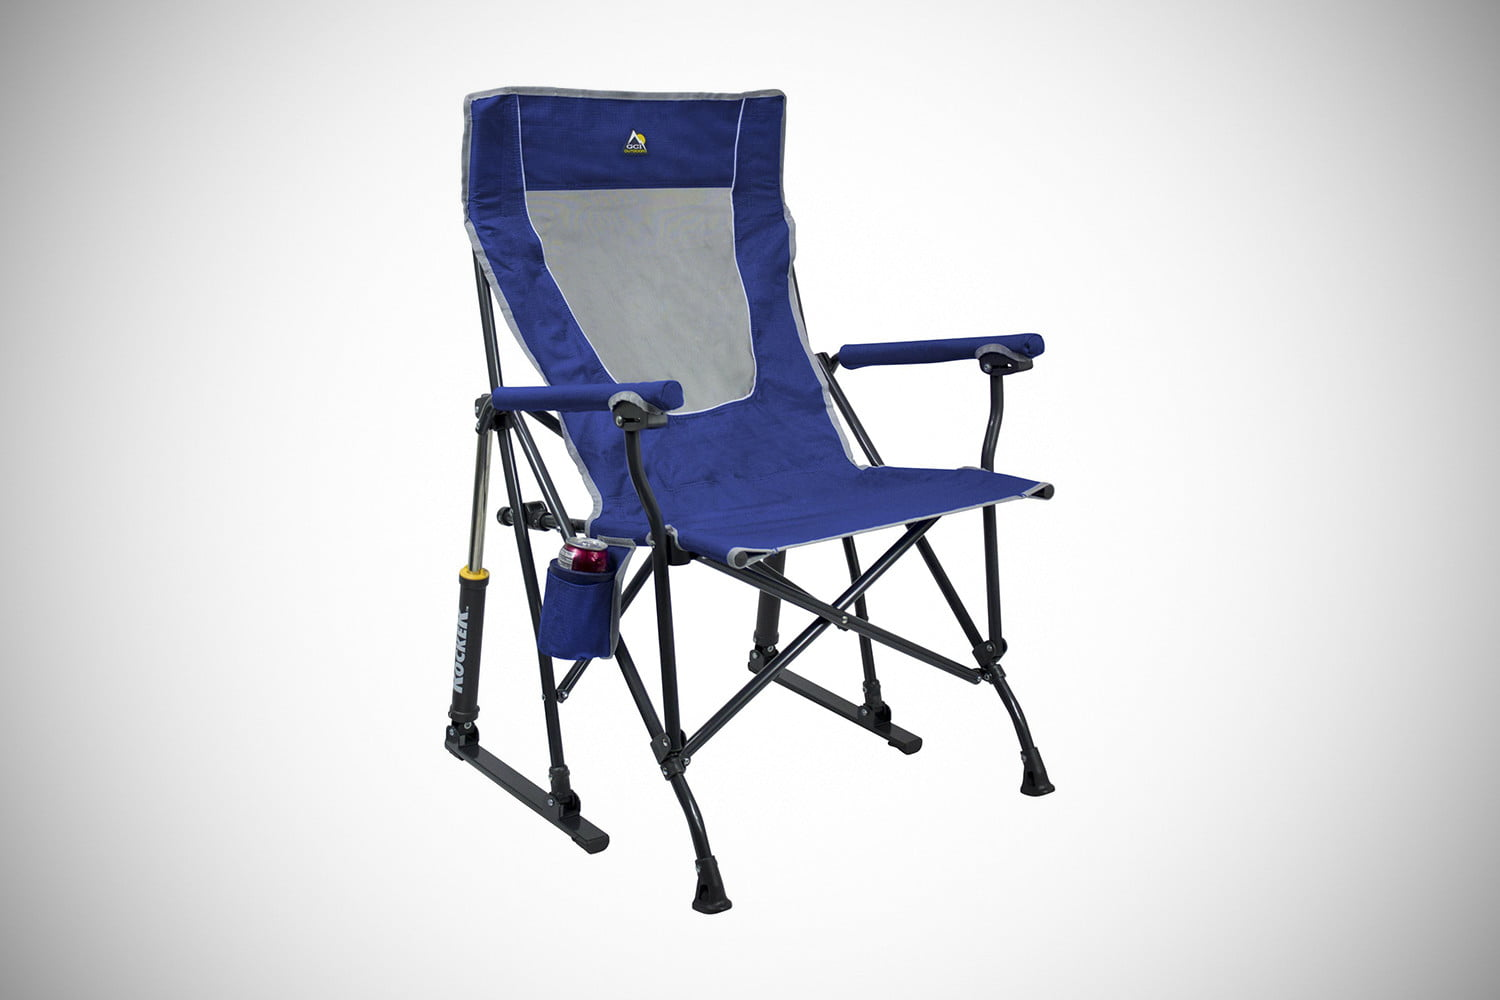 best camping chairs stool ladder chair the digital trends